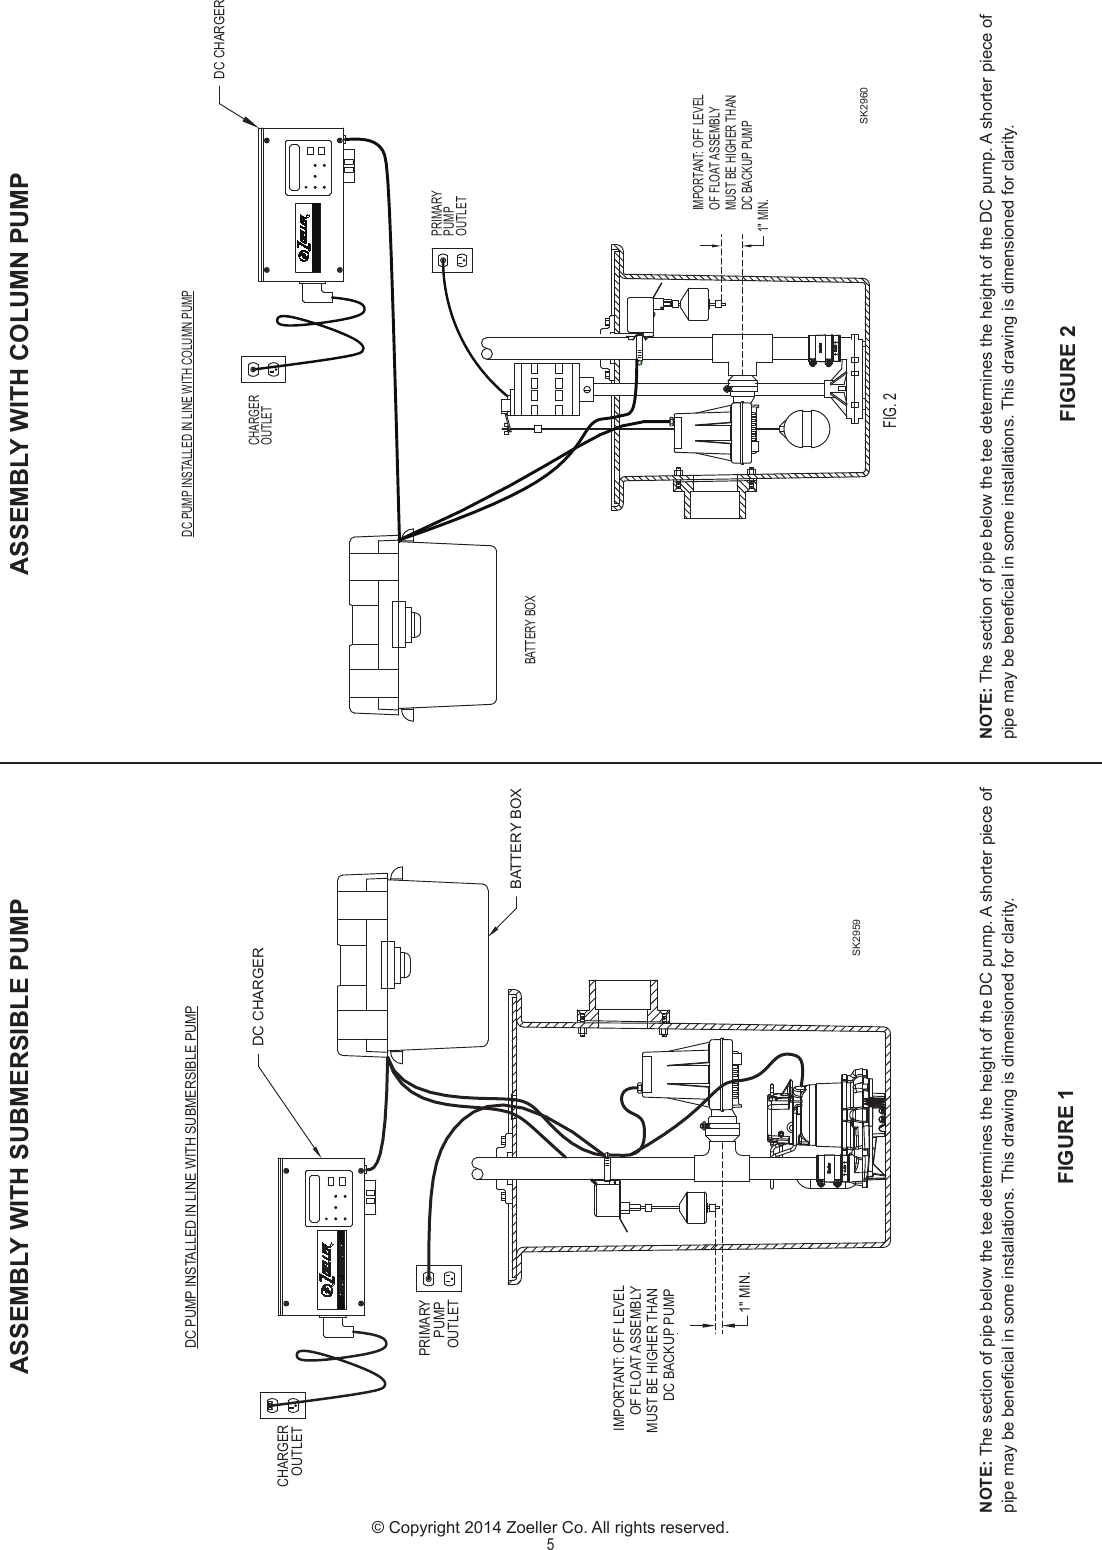 536908 2 Zoeller Aquanot 508 Installation Manual User Submersible Pump Wiring Diagram Page 5 Of 8